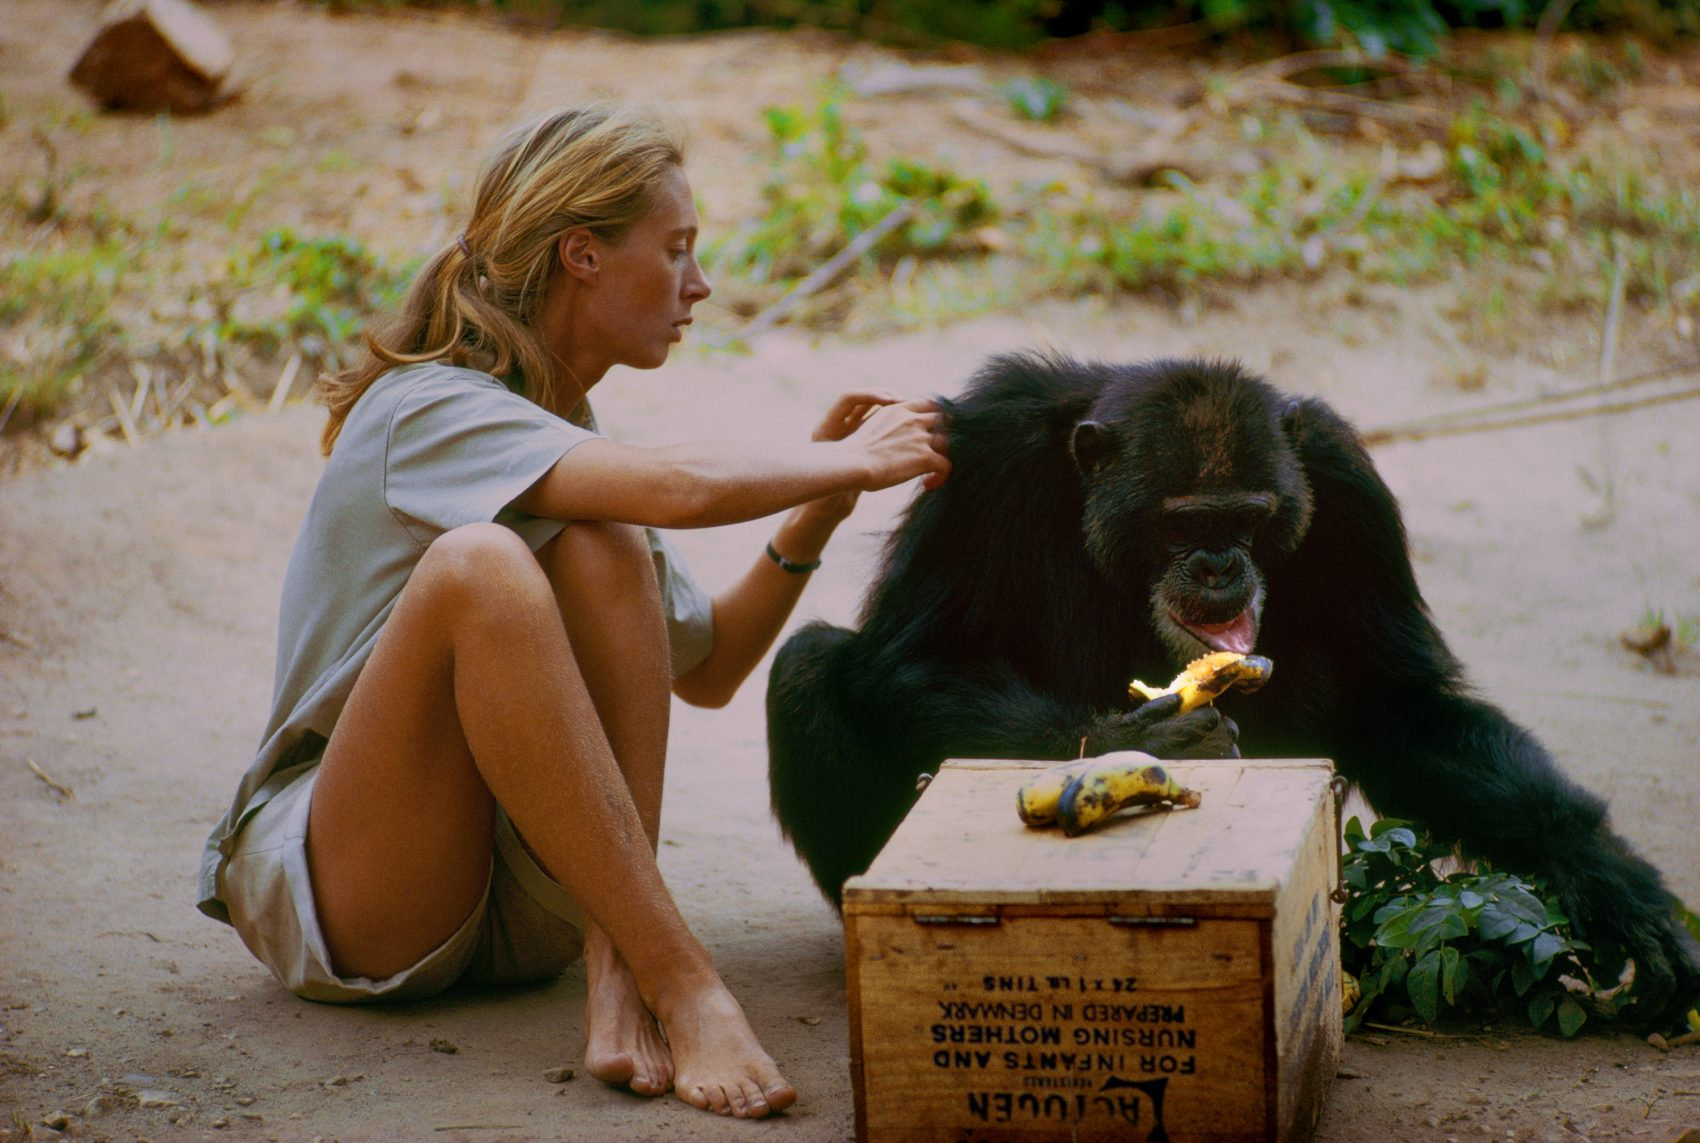 Jane Goodall pictured with the chimp named David Greybeard, who was the first chimp to lose his fear of her, eventually coming to her camp to steal bananas and allowing Jane to touch and groom him. (Courtesy Hugo van Lawick/National Geographic Creative)